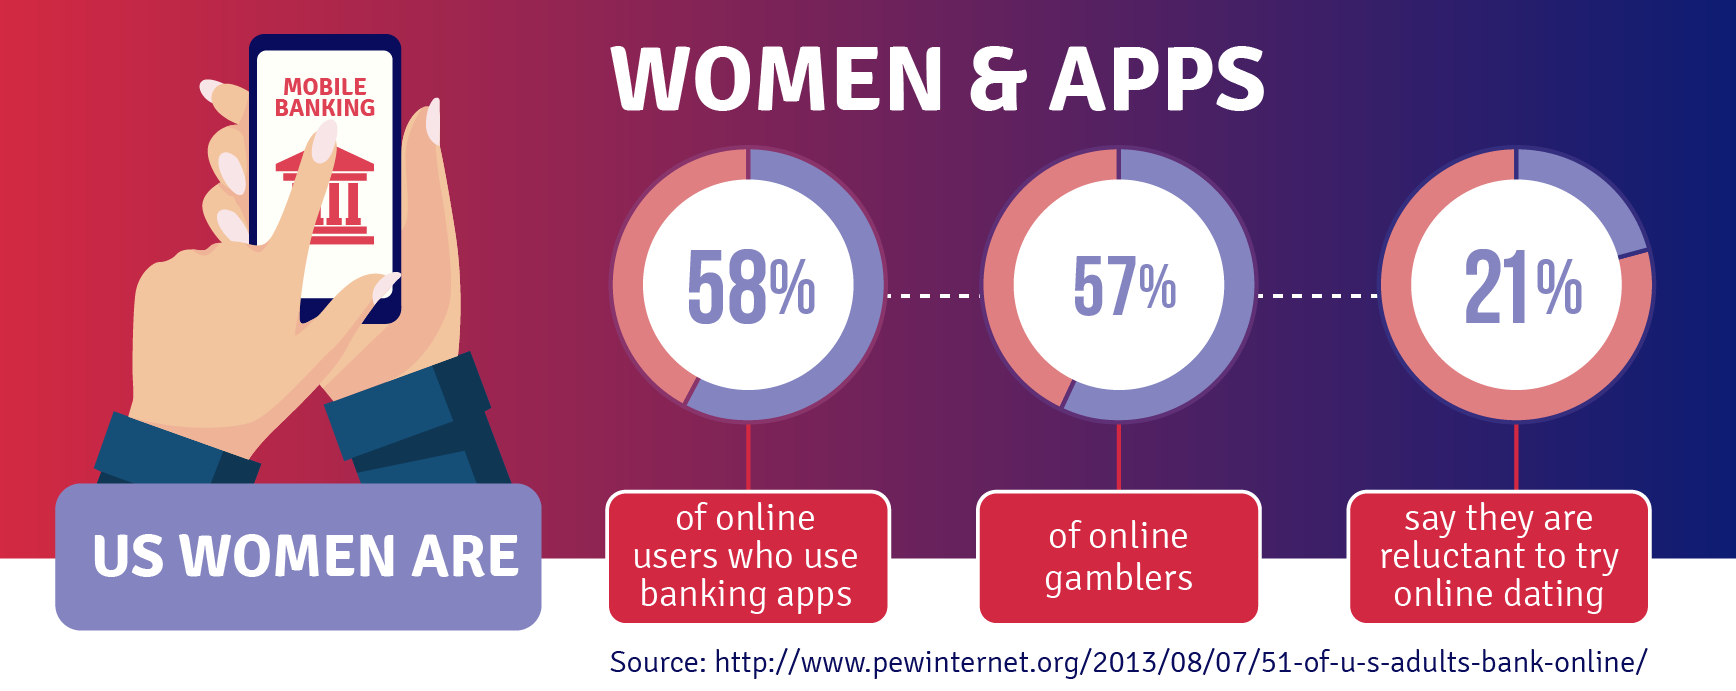 women and apps